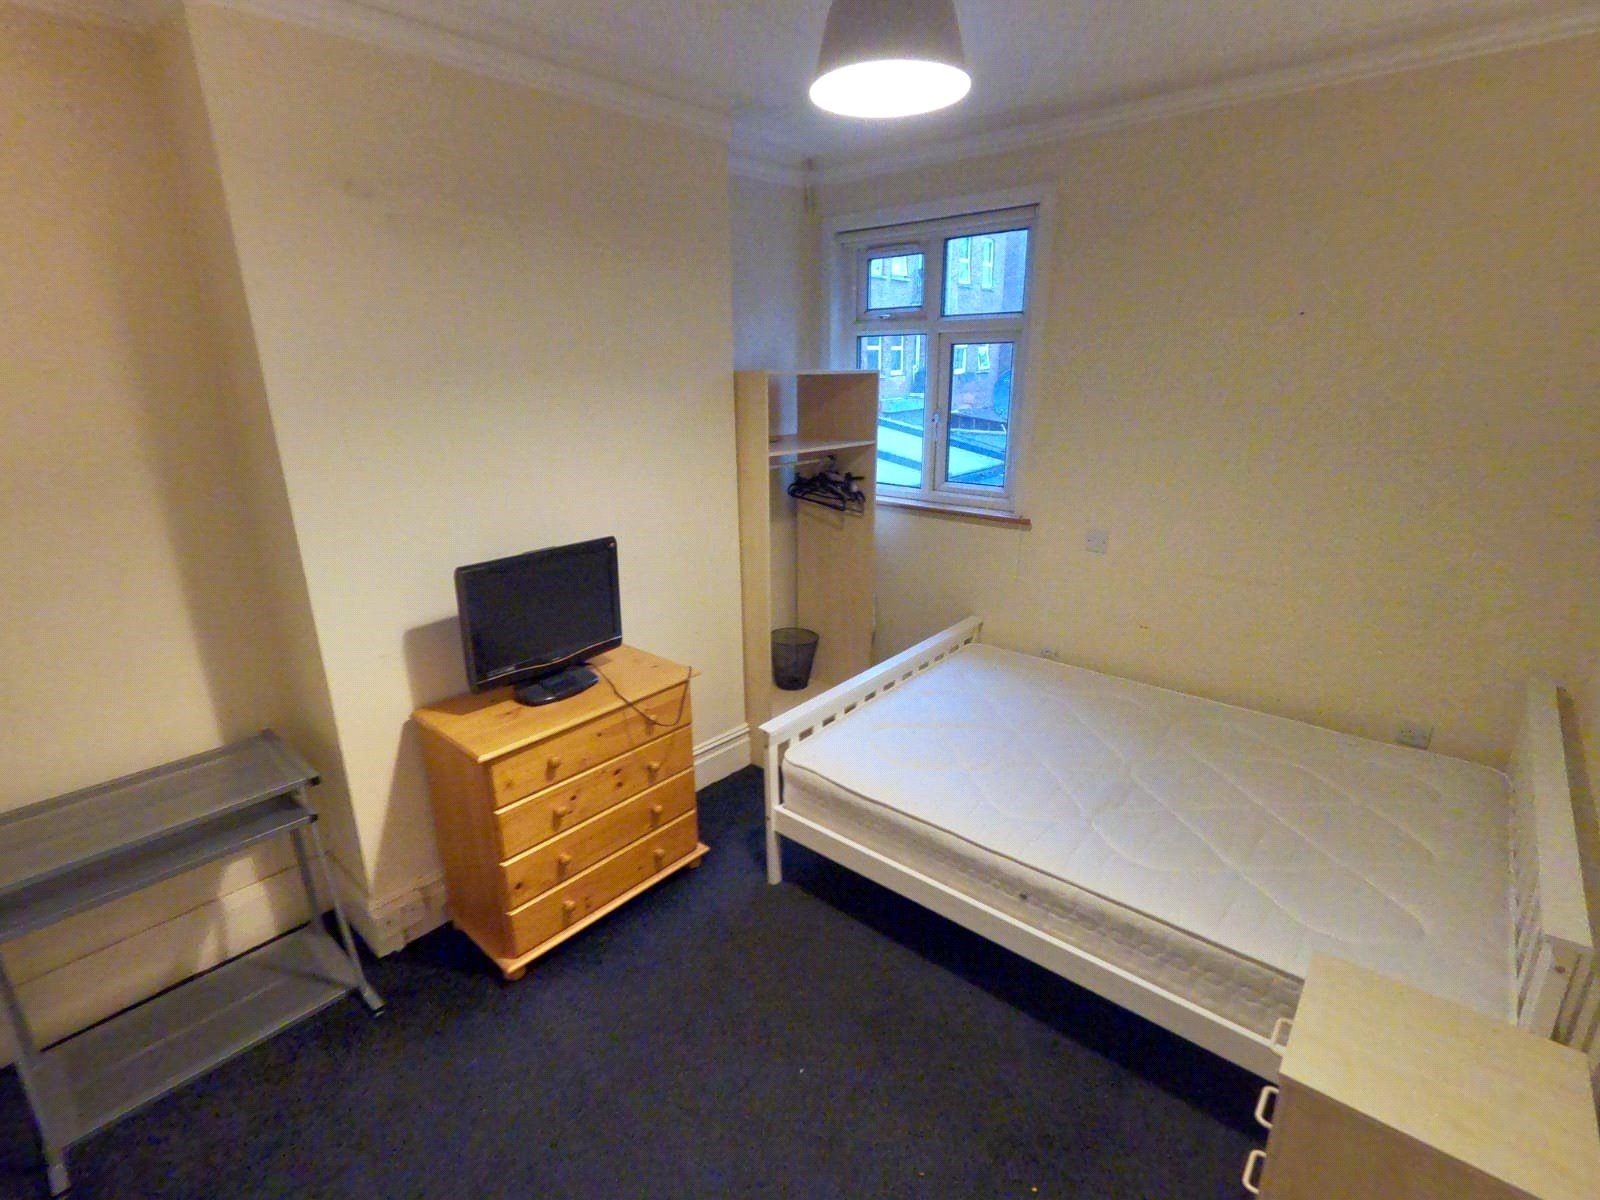 1 bed apartment to rent in Haringey, N4 1HY - Property Image 1